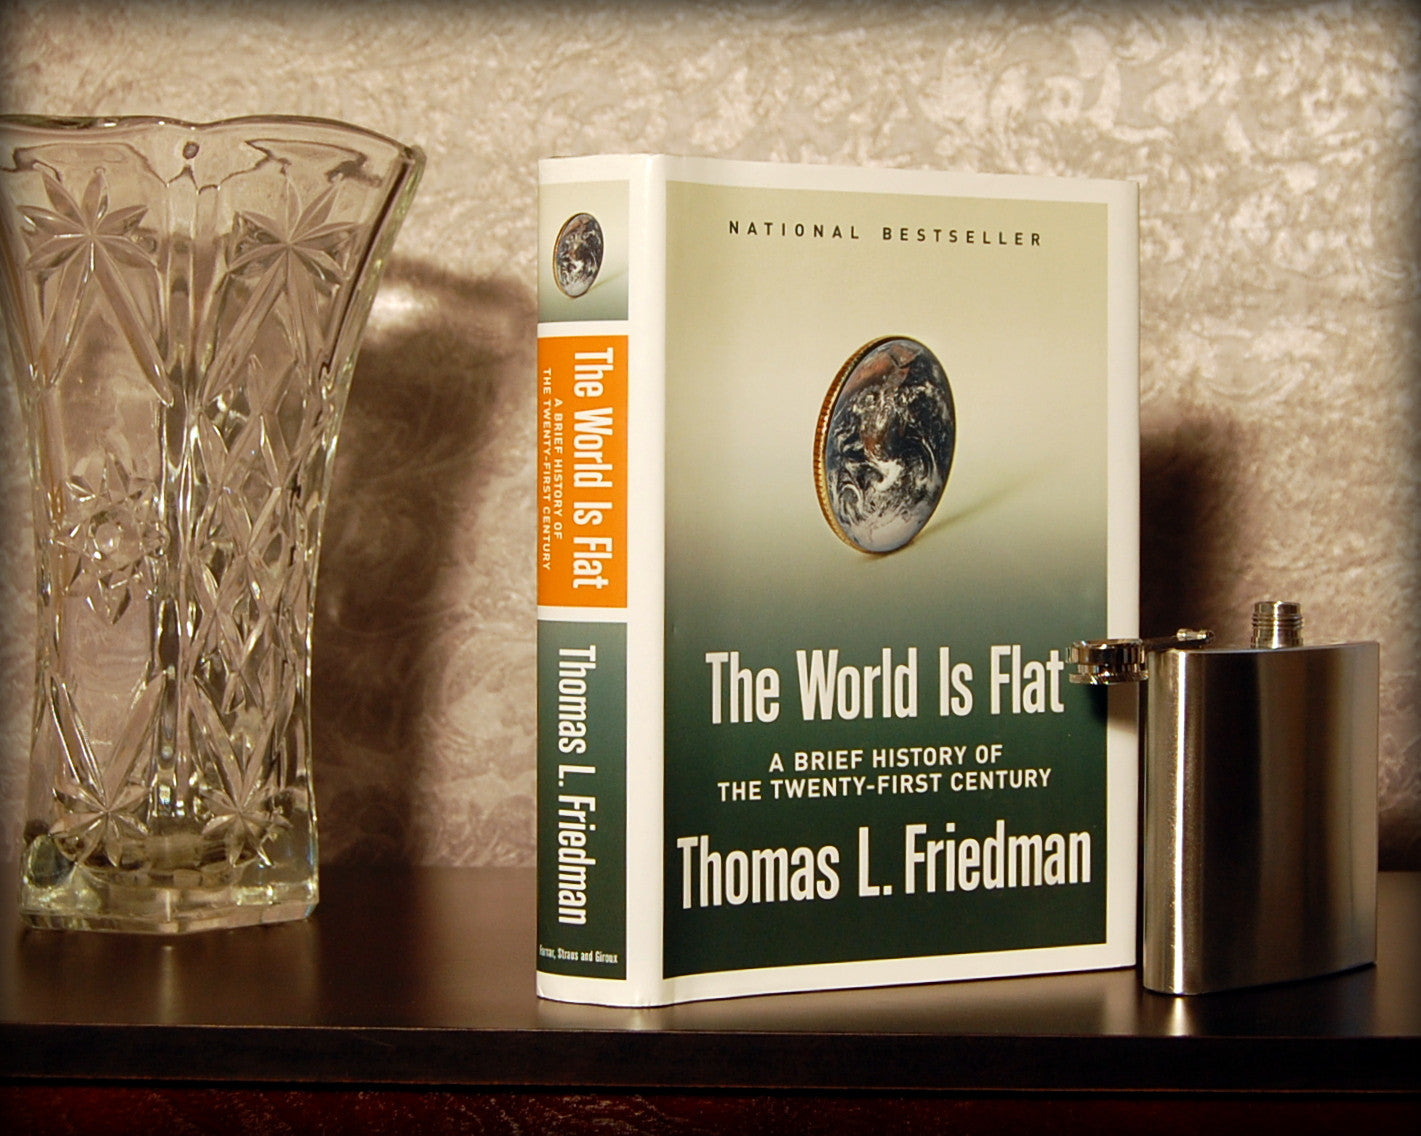 The World Is Flat / Thomas Friedman - hollow book safe